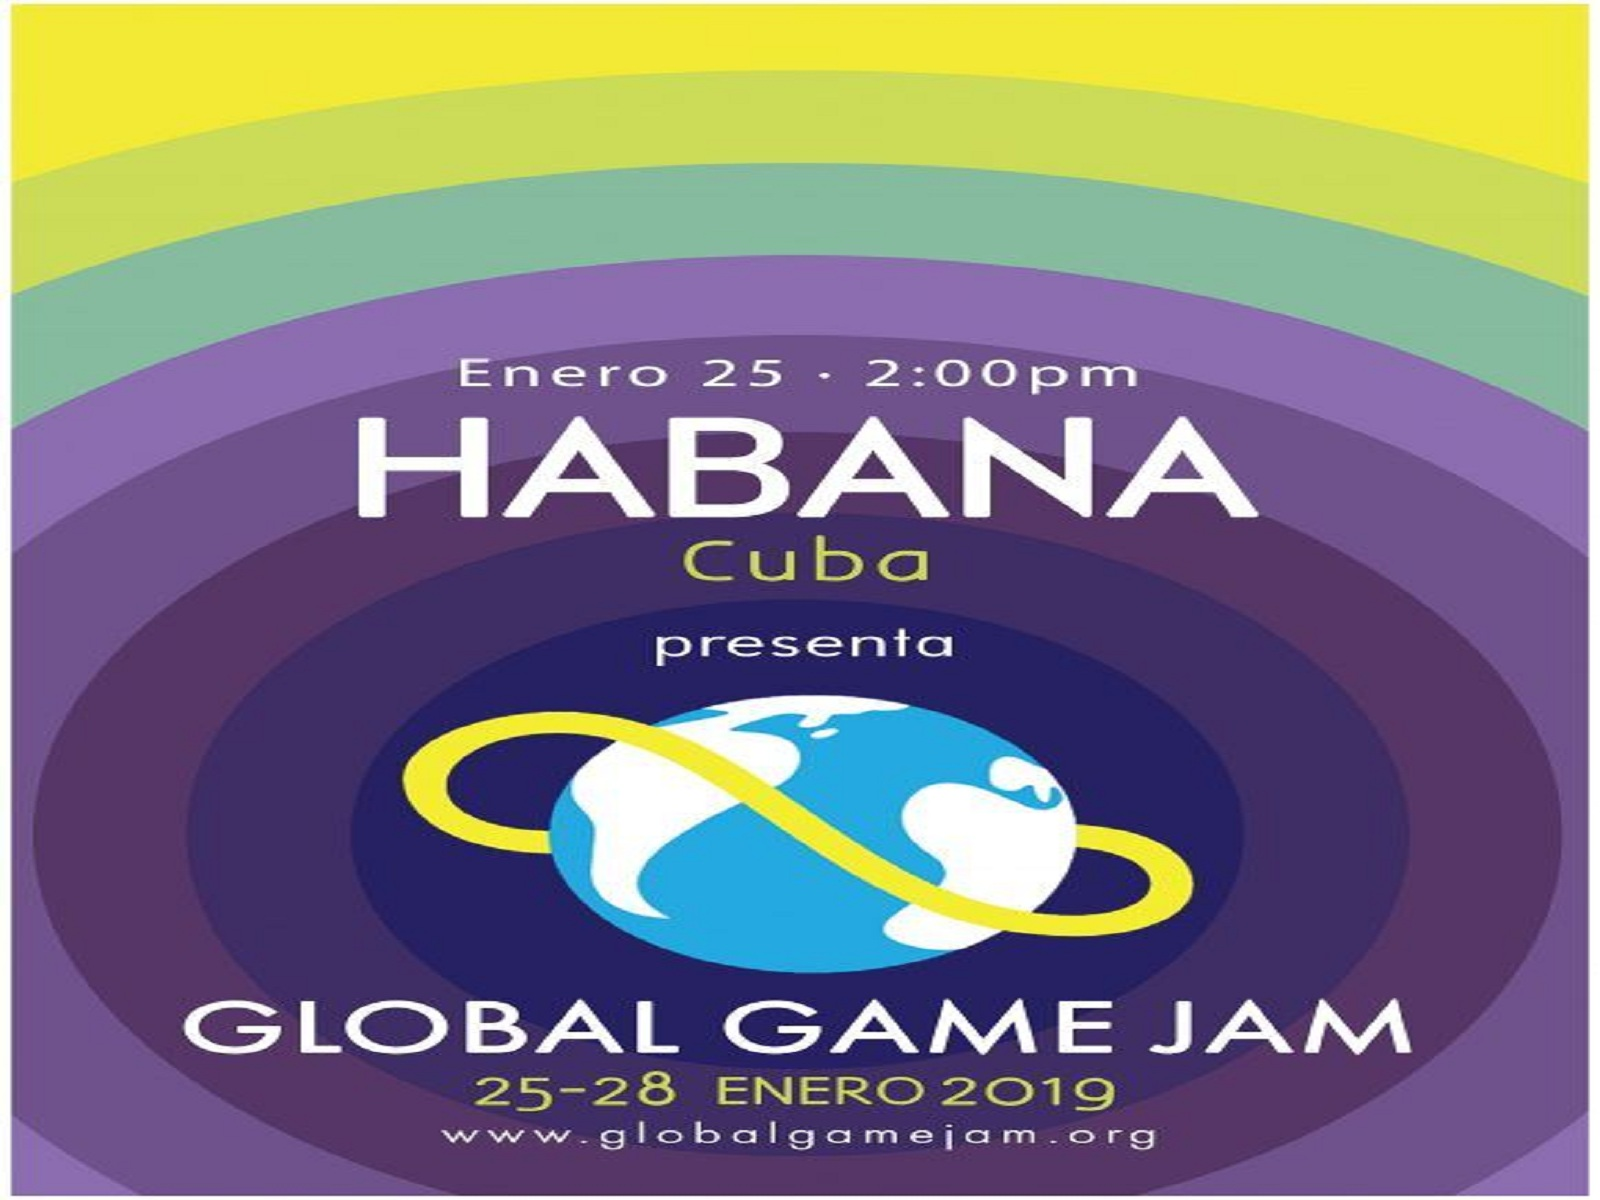 Banenr Global Game Jam